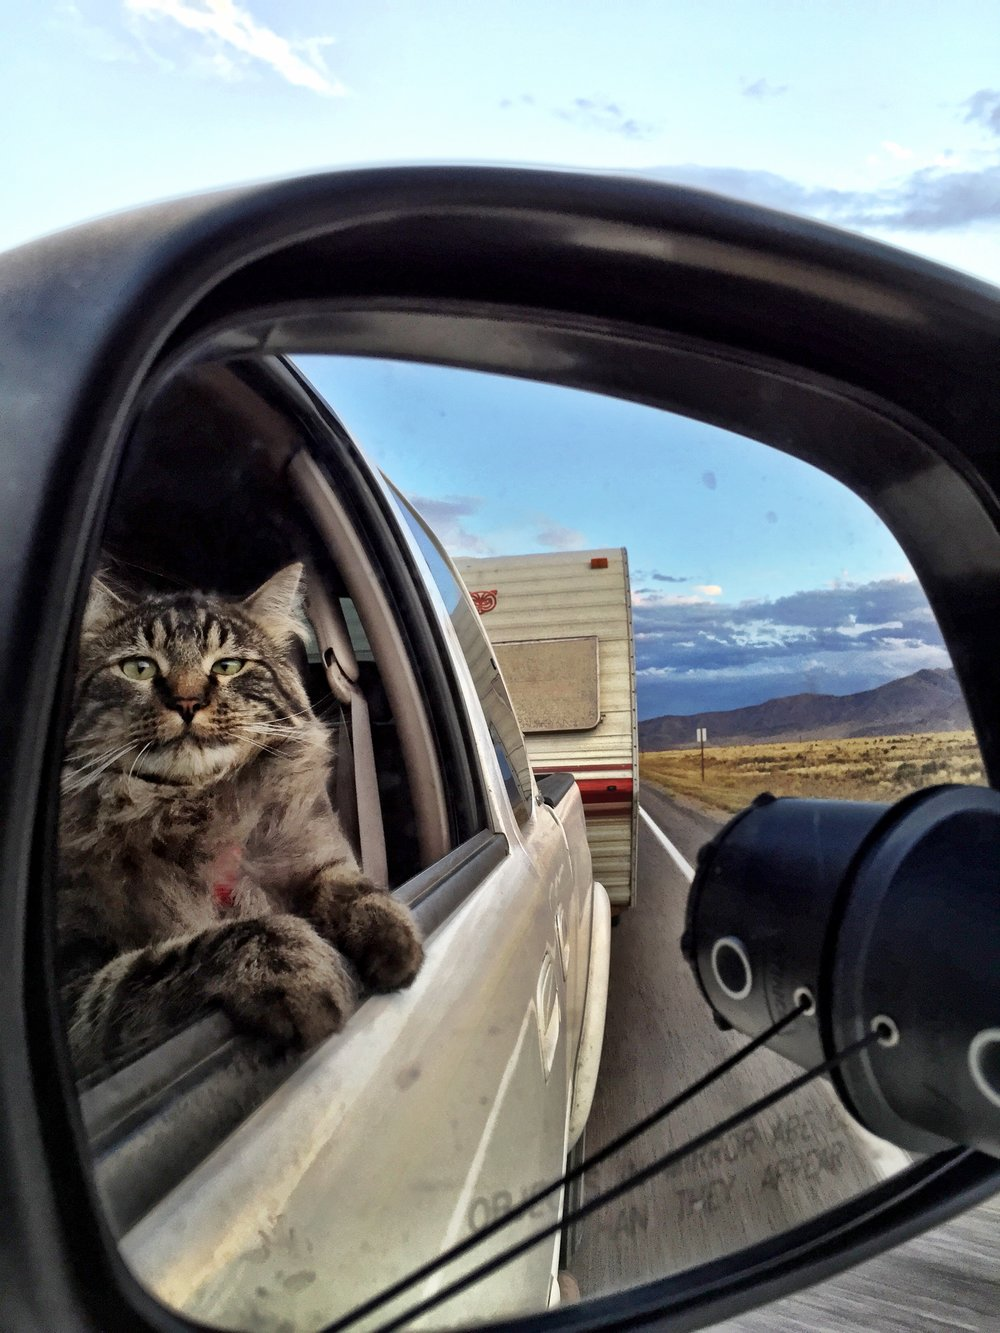 "otie-car-cat""Riding in cars with cats"""